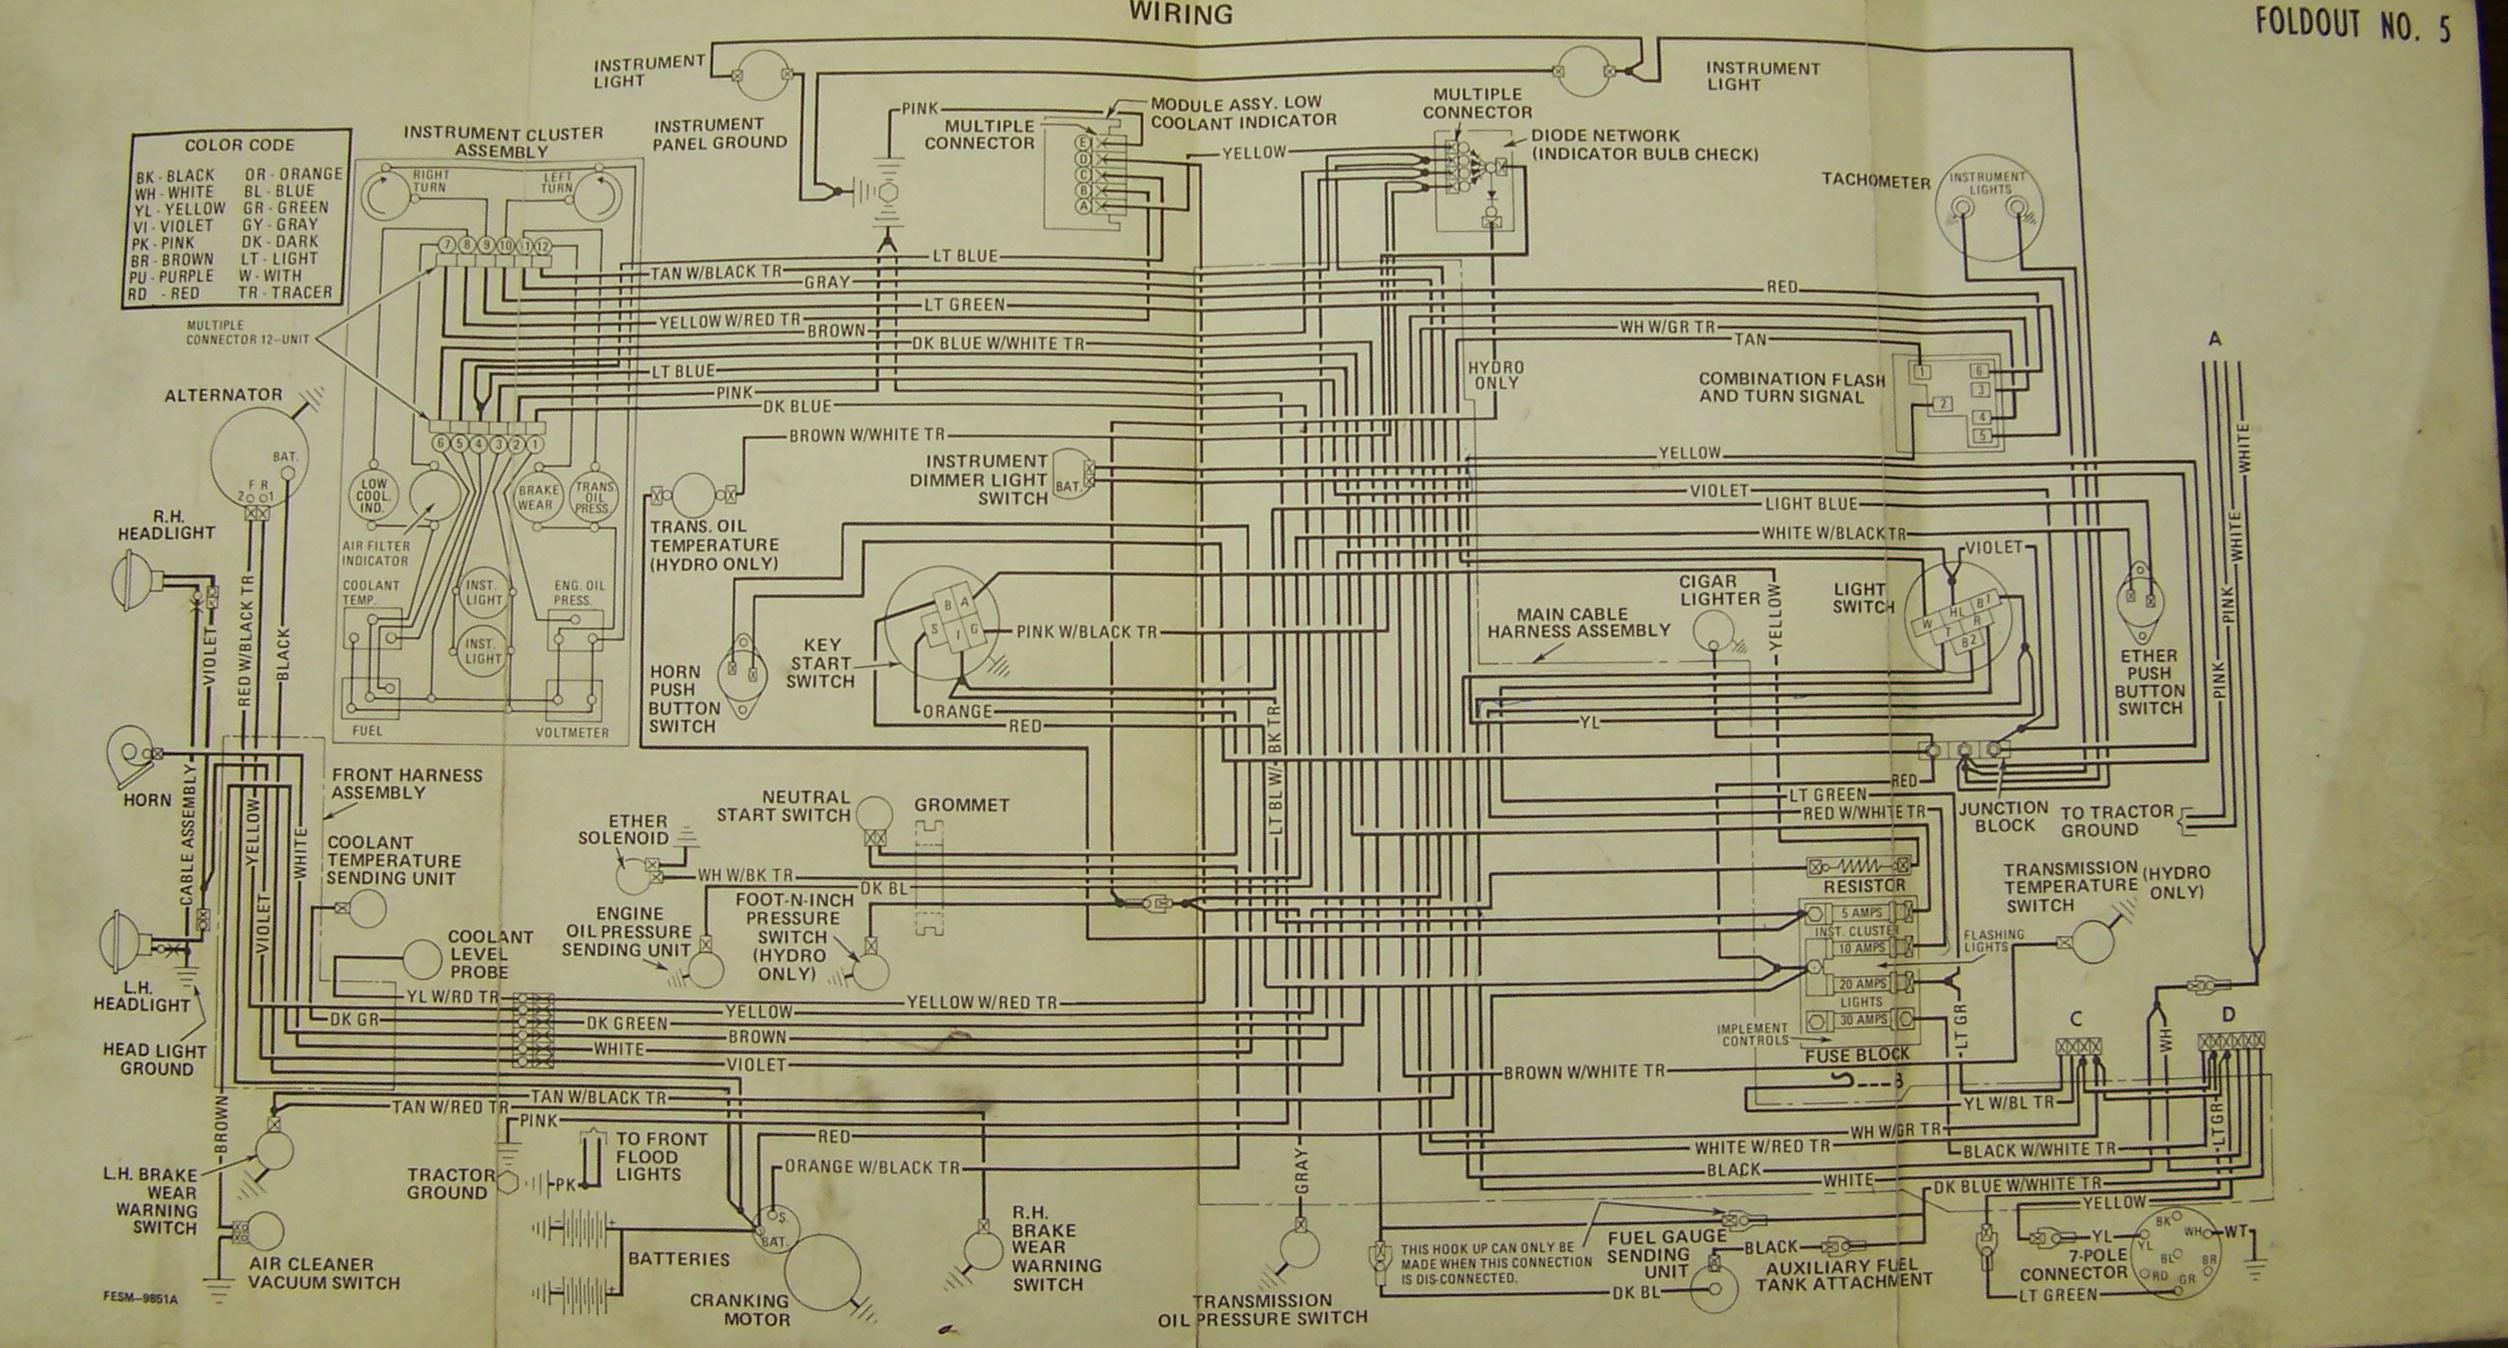 86series5 ih 574 wiring diagram case 430 tractor wiring diagram \u2022 wiring case jx 95 wiring diagram at nearapp.co